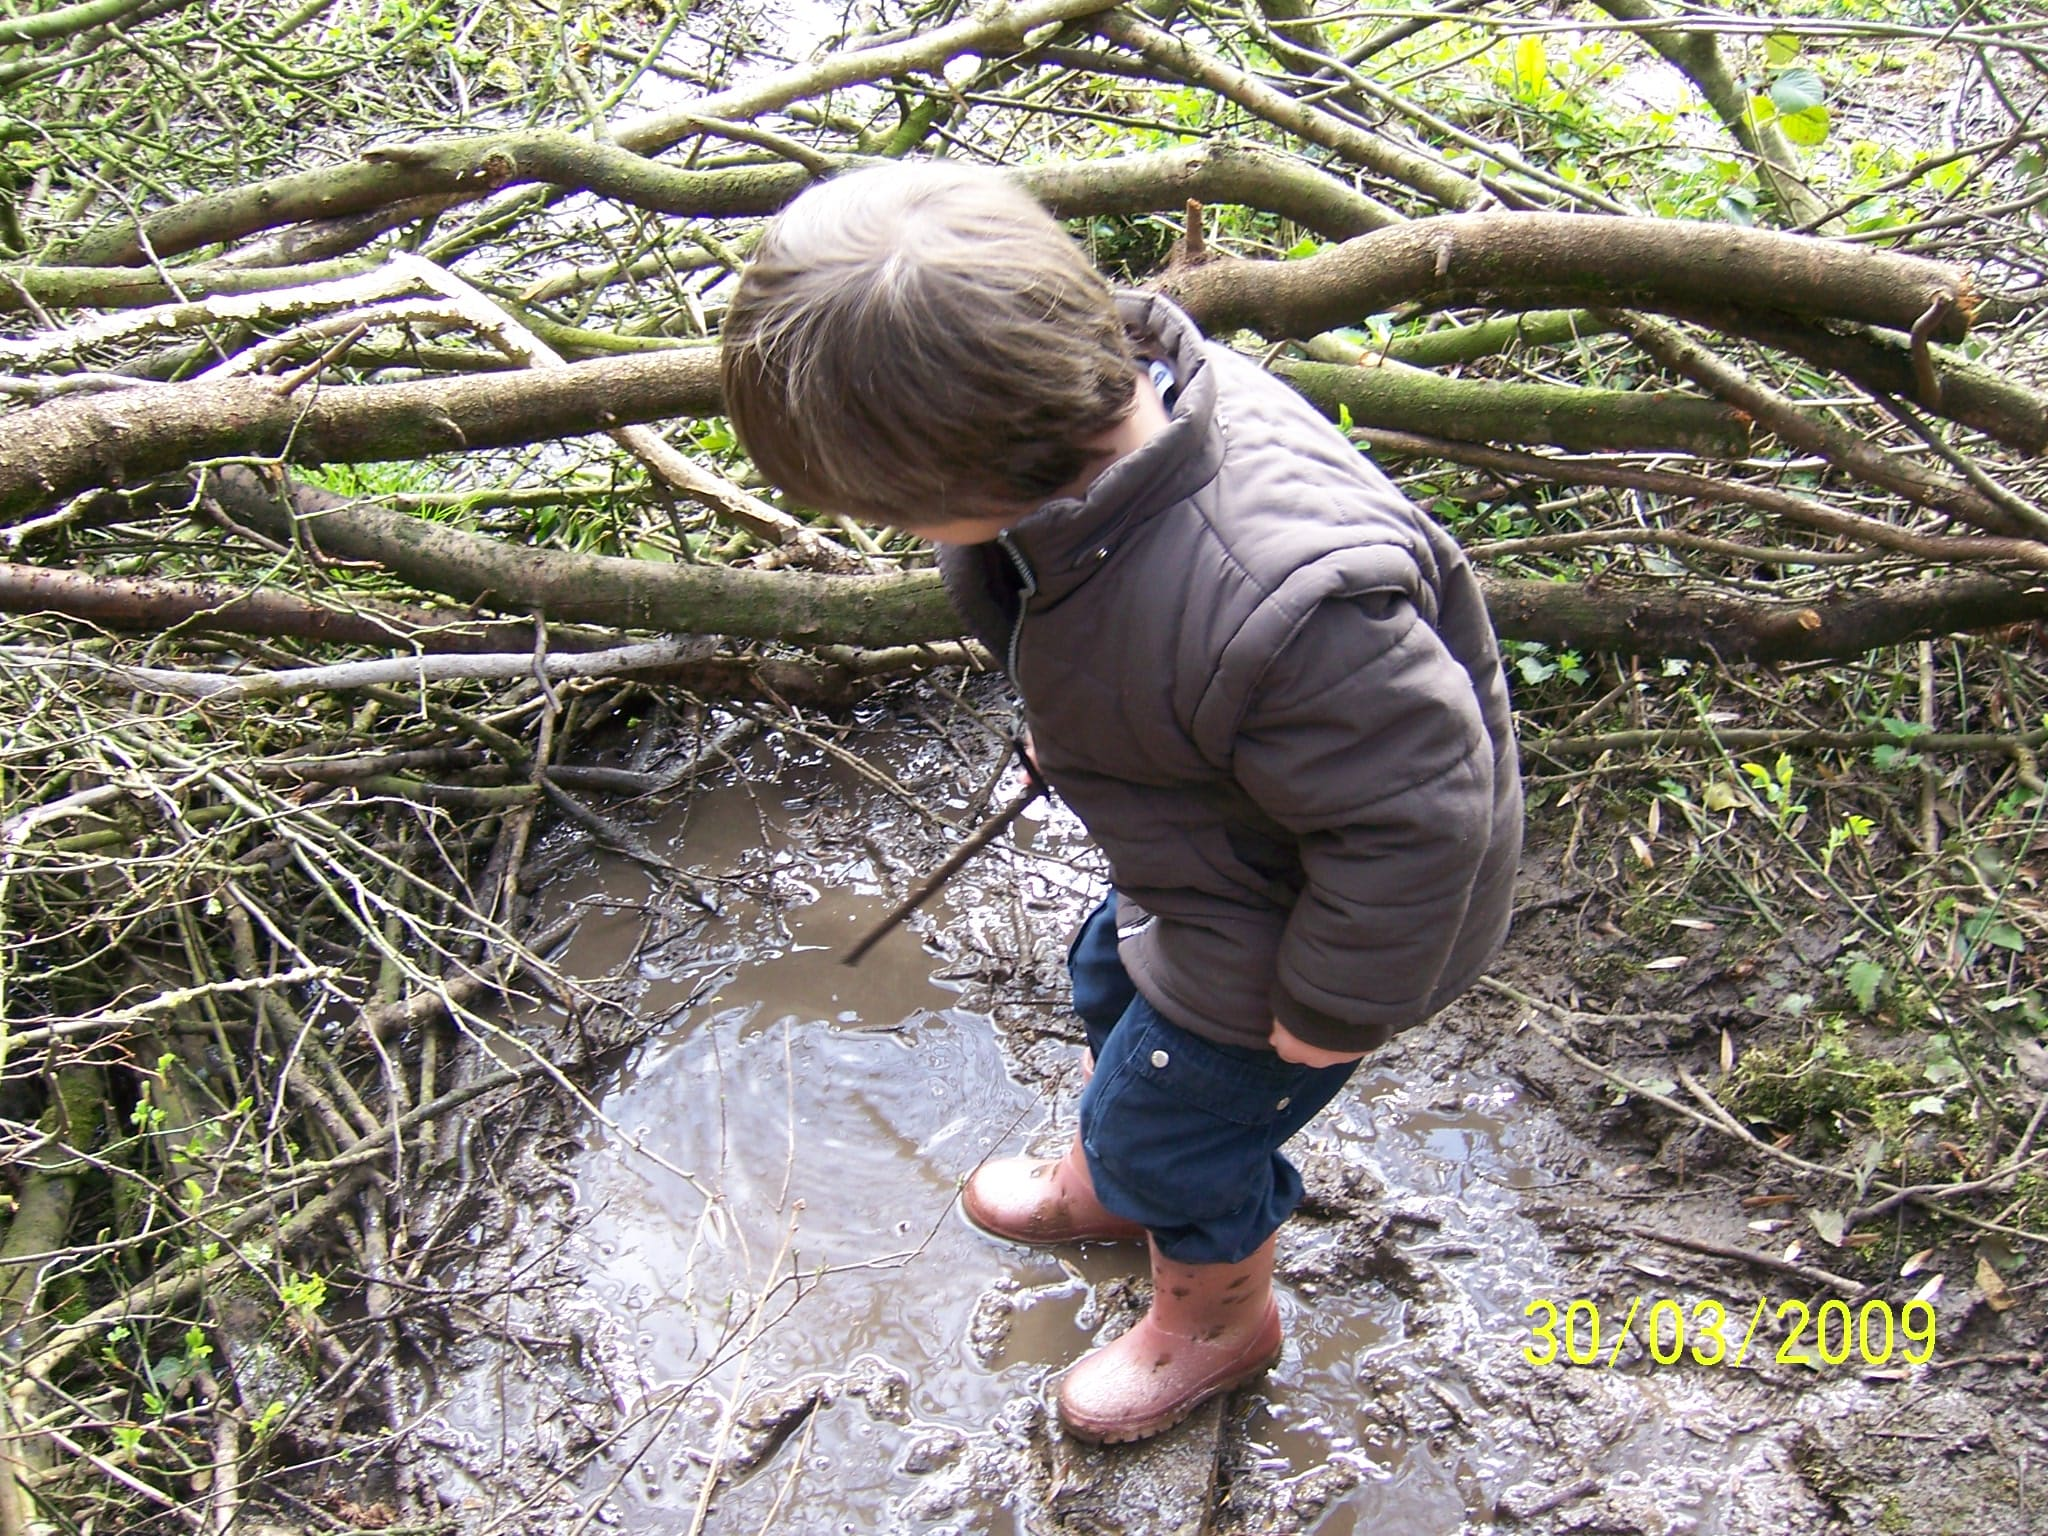 Exploring mud in the wood